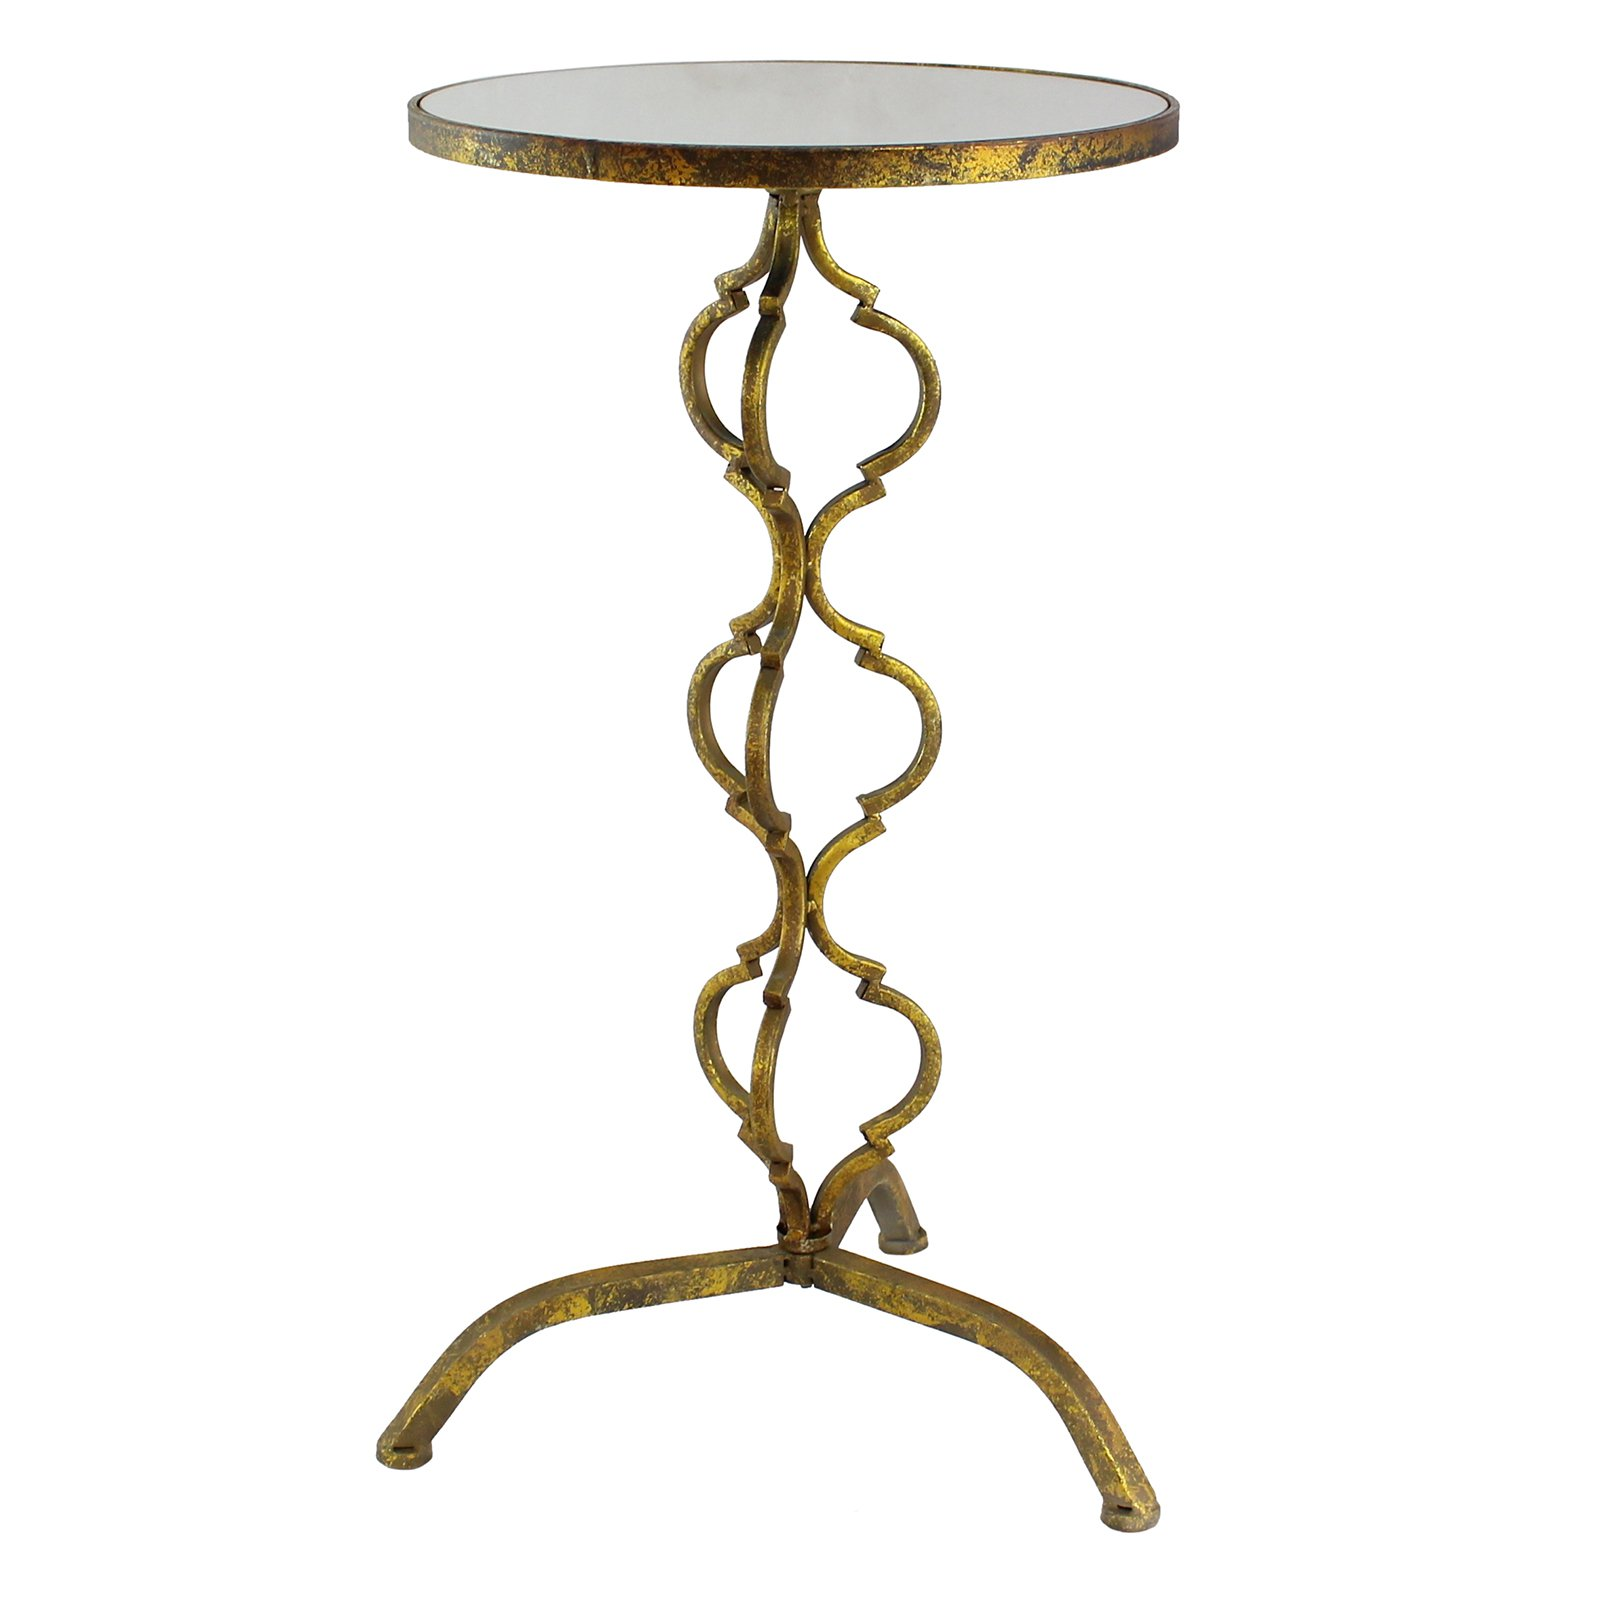 Aspire Home Accents Myra Gold Metal Accent Table by Aspire Home Accents